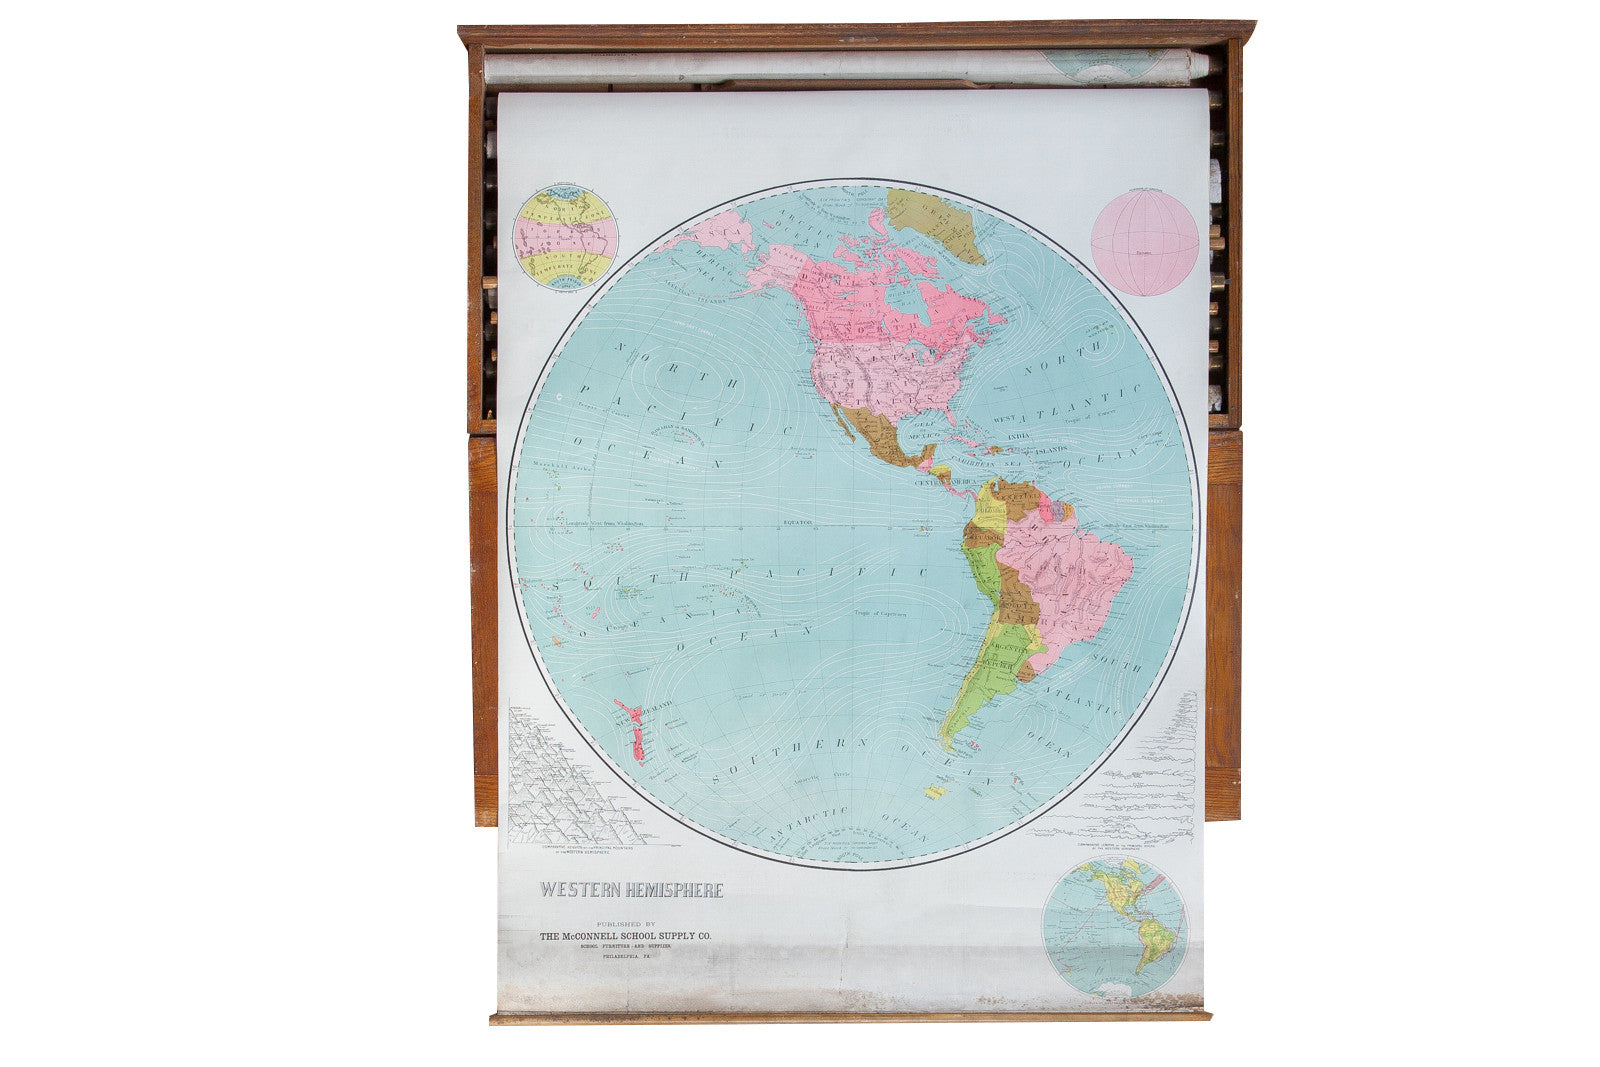 ... World Map Western Hemisphere. Previous Image Next Image. Sold